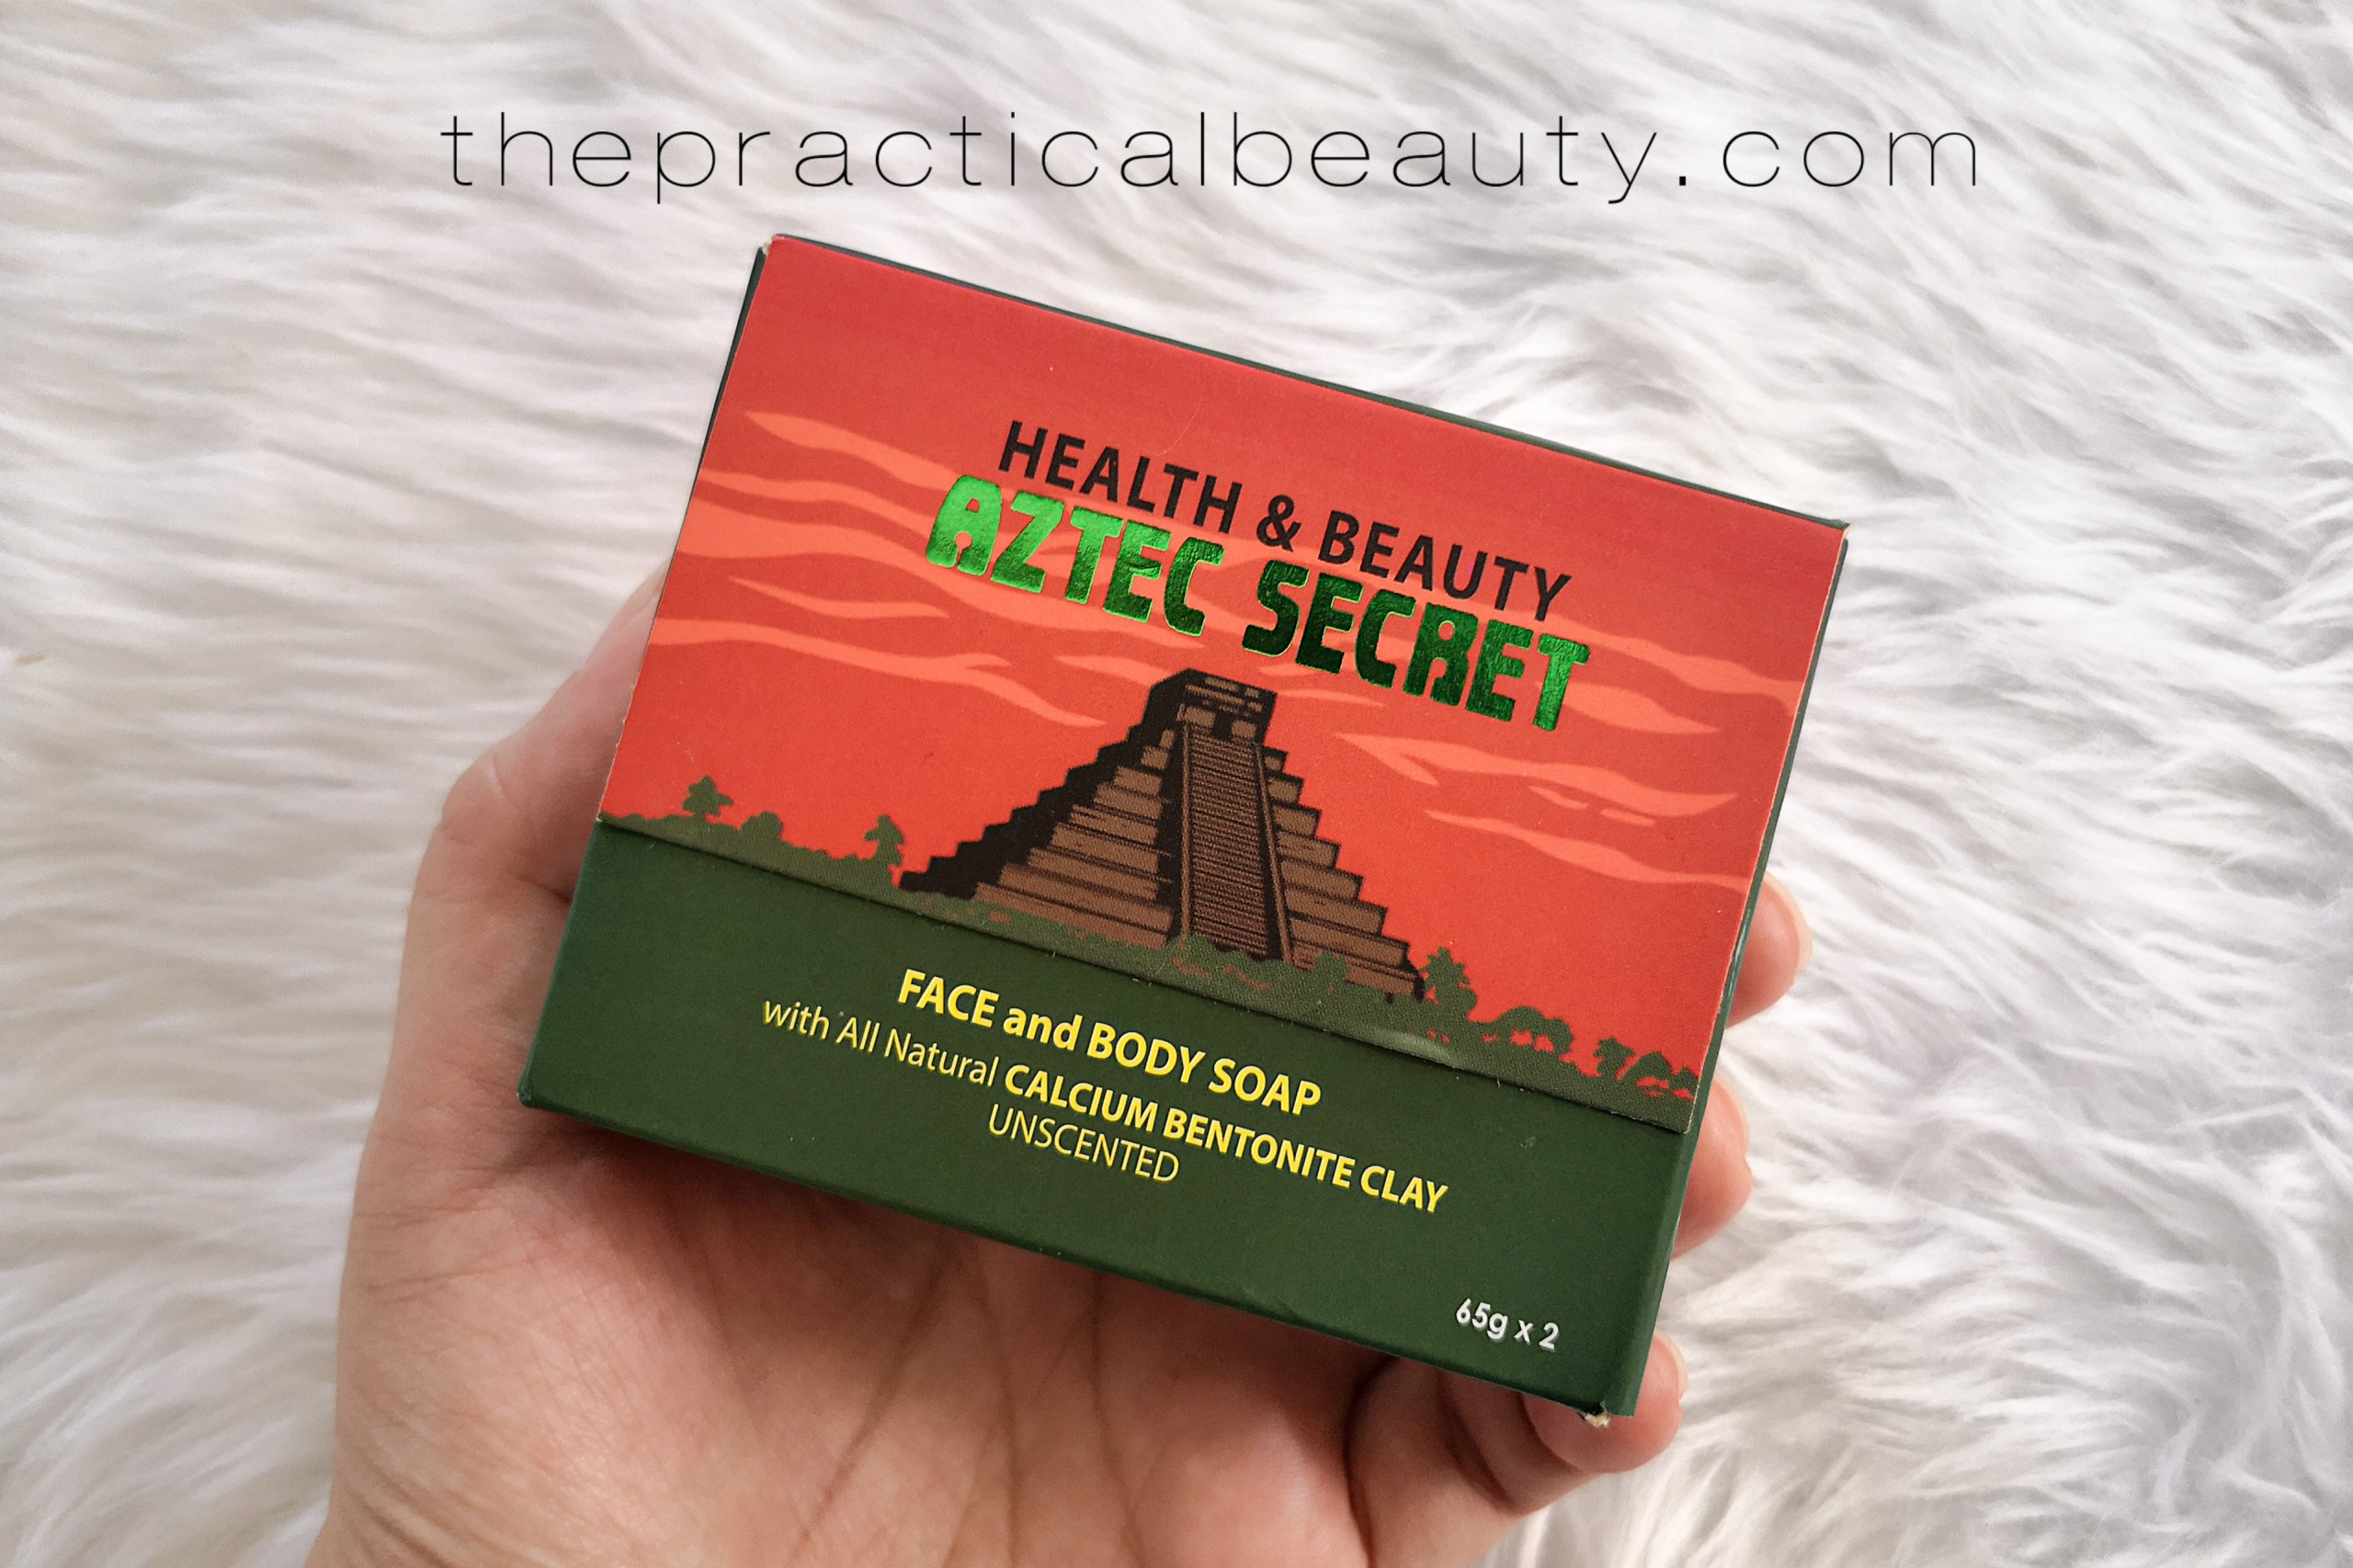 Aztec Secret Face and Body Soap